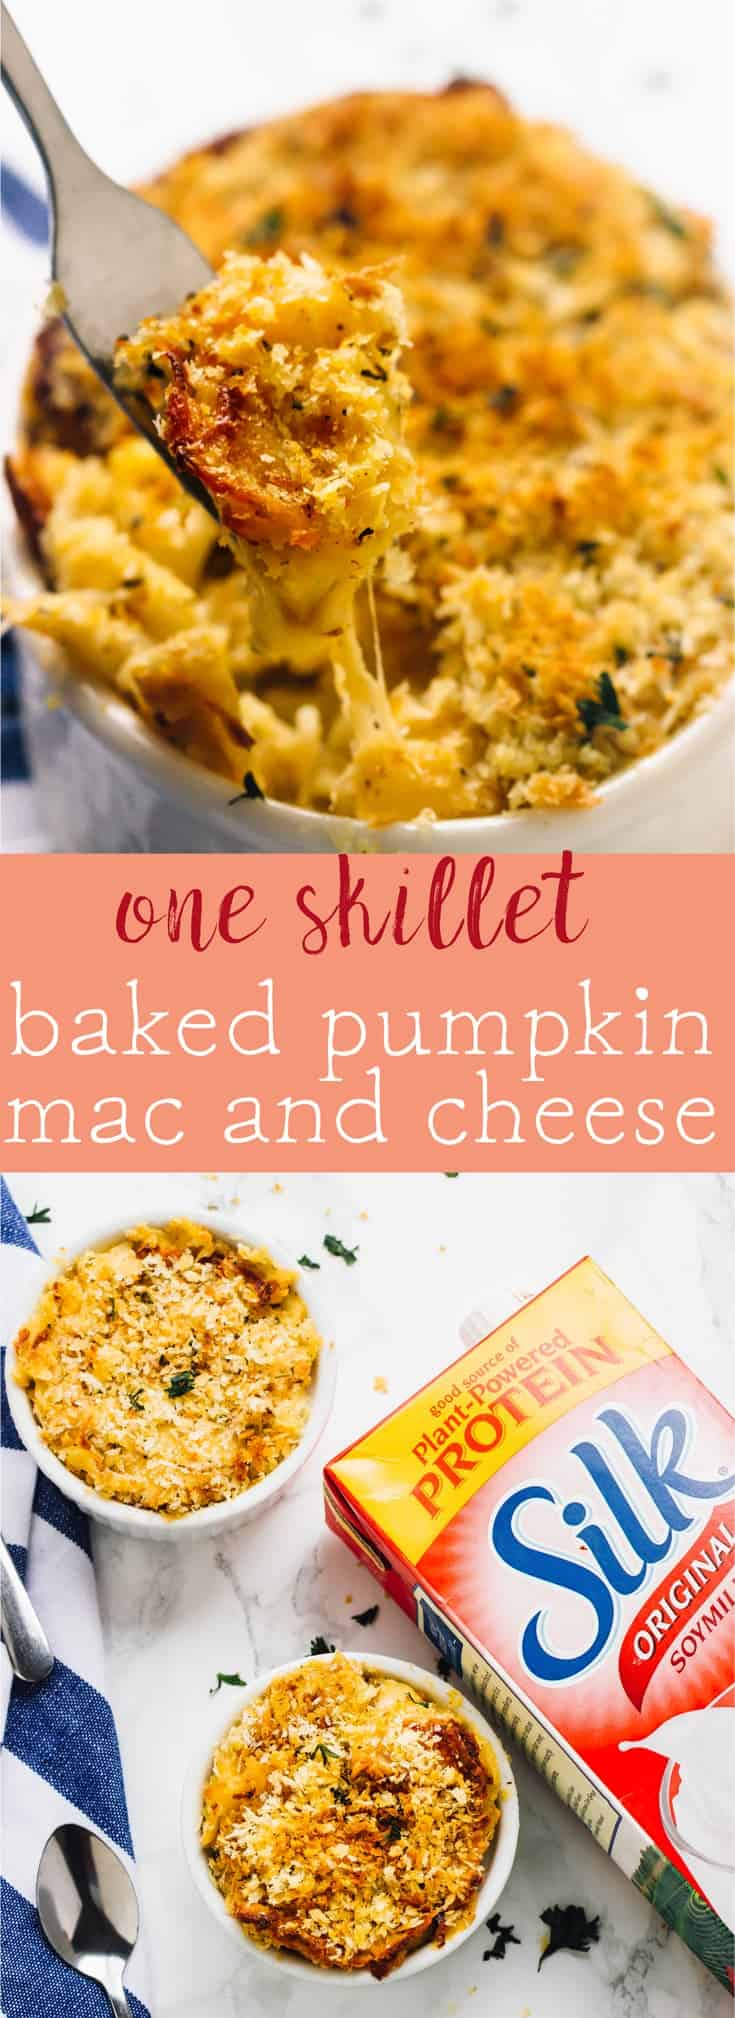 This One Skillet Baked Pumpkin Mac and Cheese is loaded with lots of fall favour, tons of nutrients and tastes so decadent! It's the perfect side dish. via https://jessicainthekitchen.com